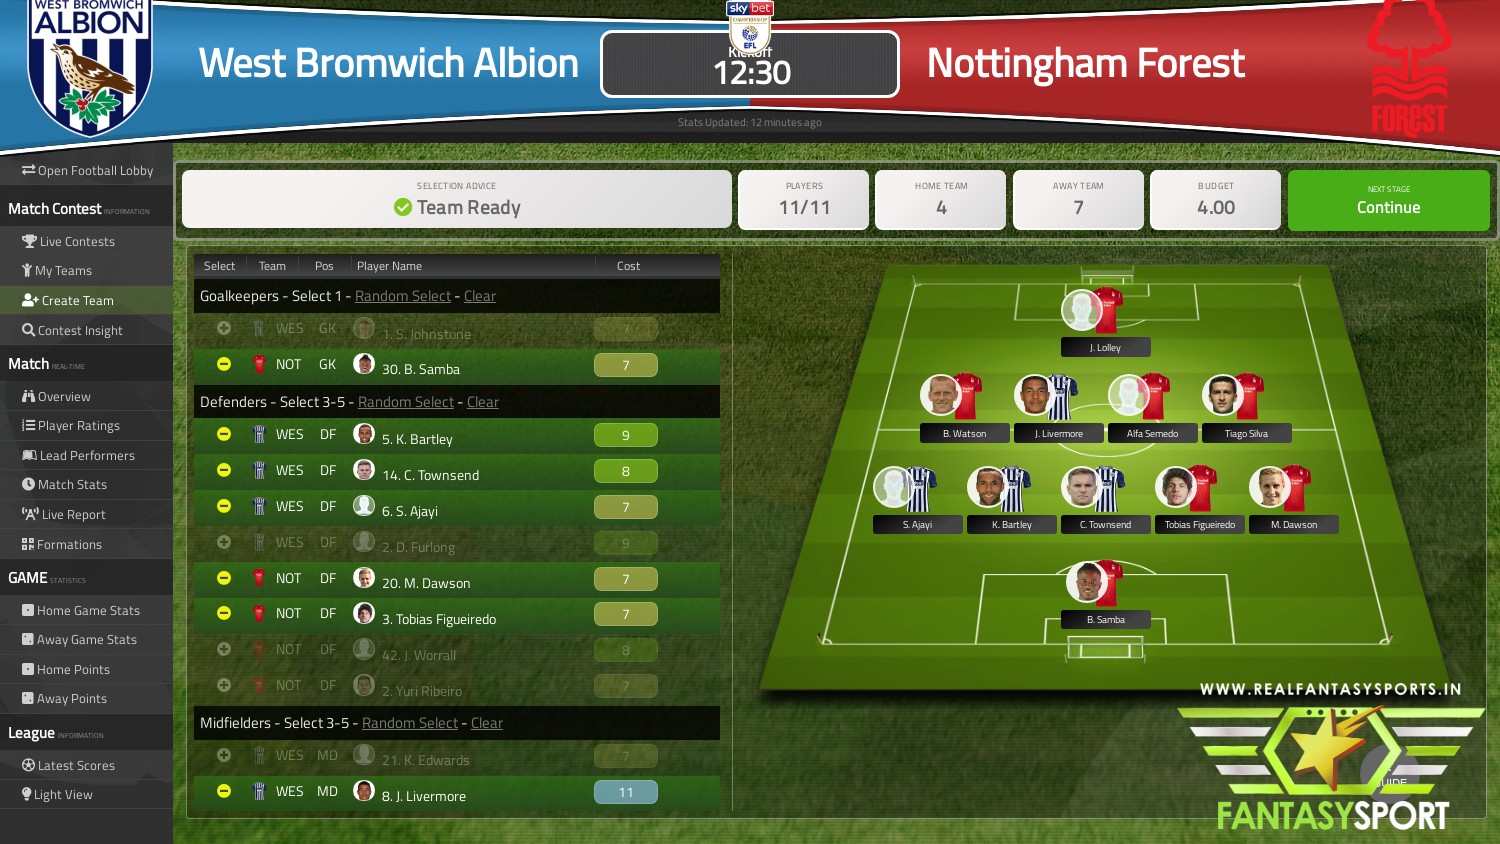 West Bromwich Albion Vs Nottingham Forest